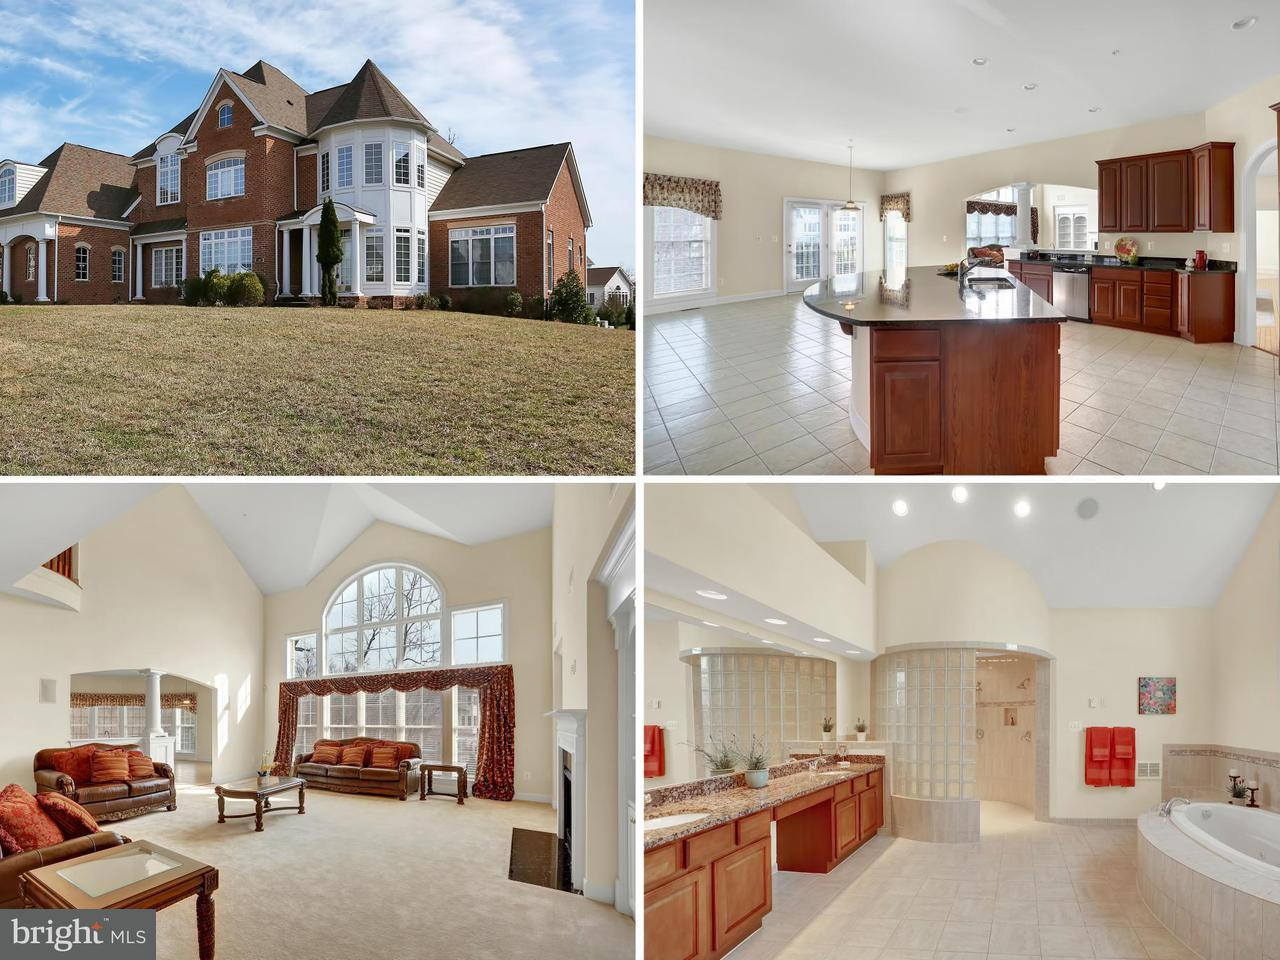 Single Family Home for Sale at 12809 Woodmore North Blvd 12809 Woodmore North Blvd Bowie, Maryland 20720 United States